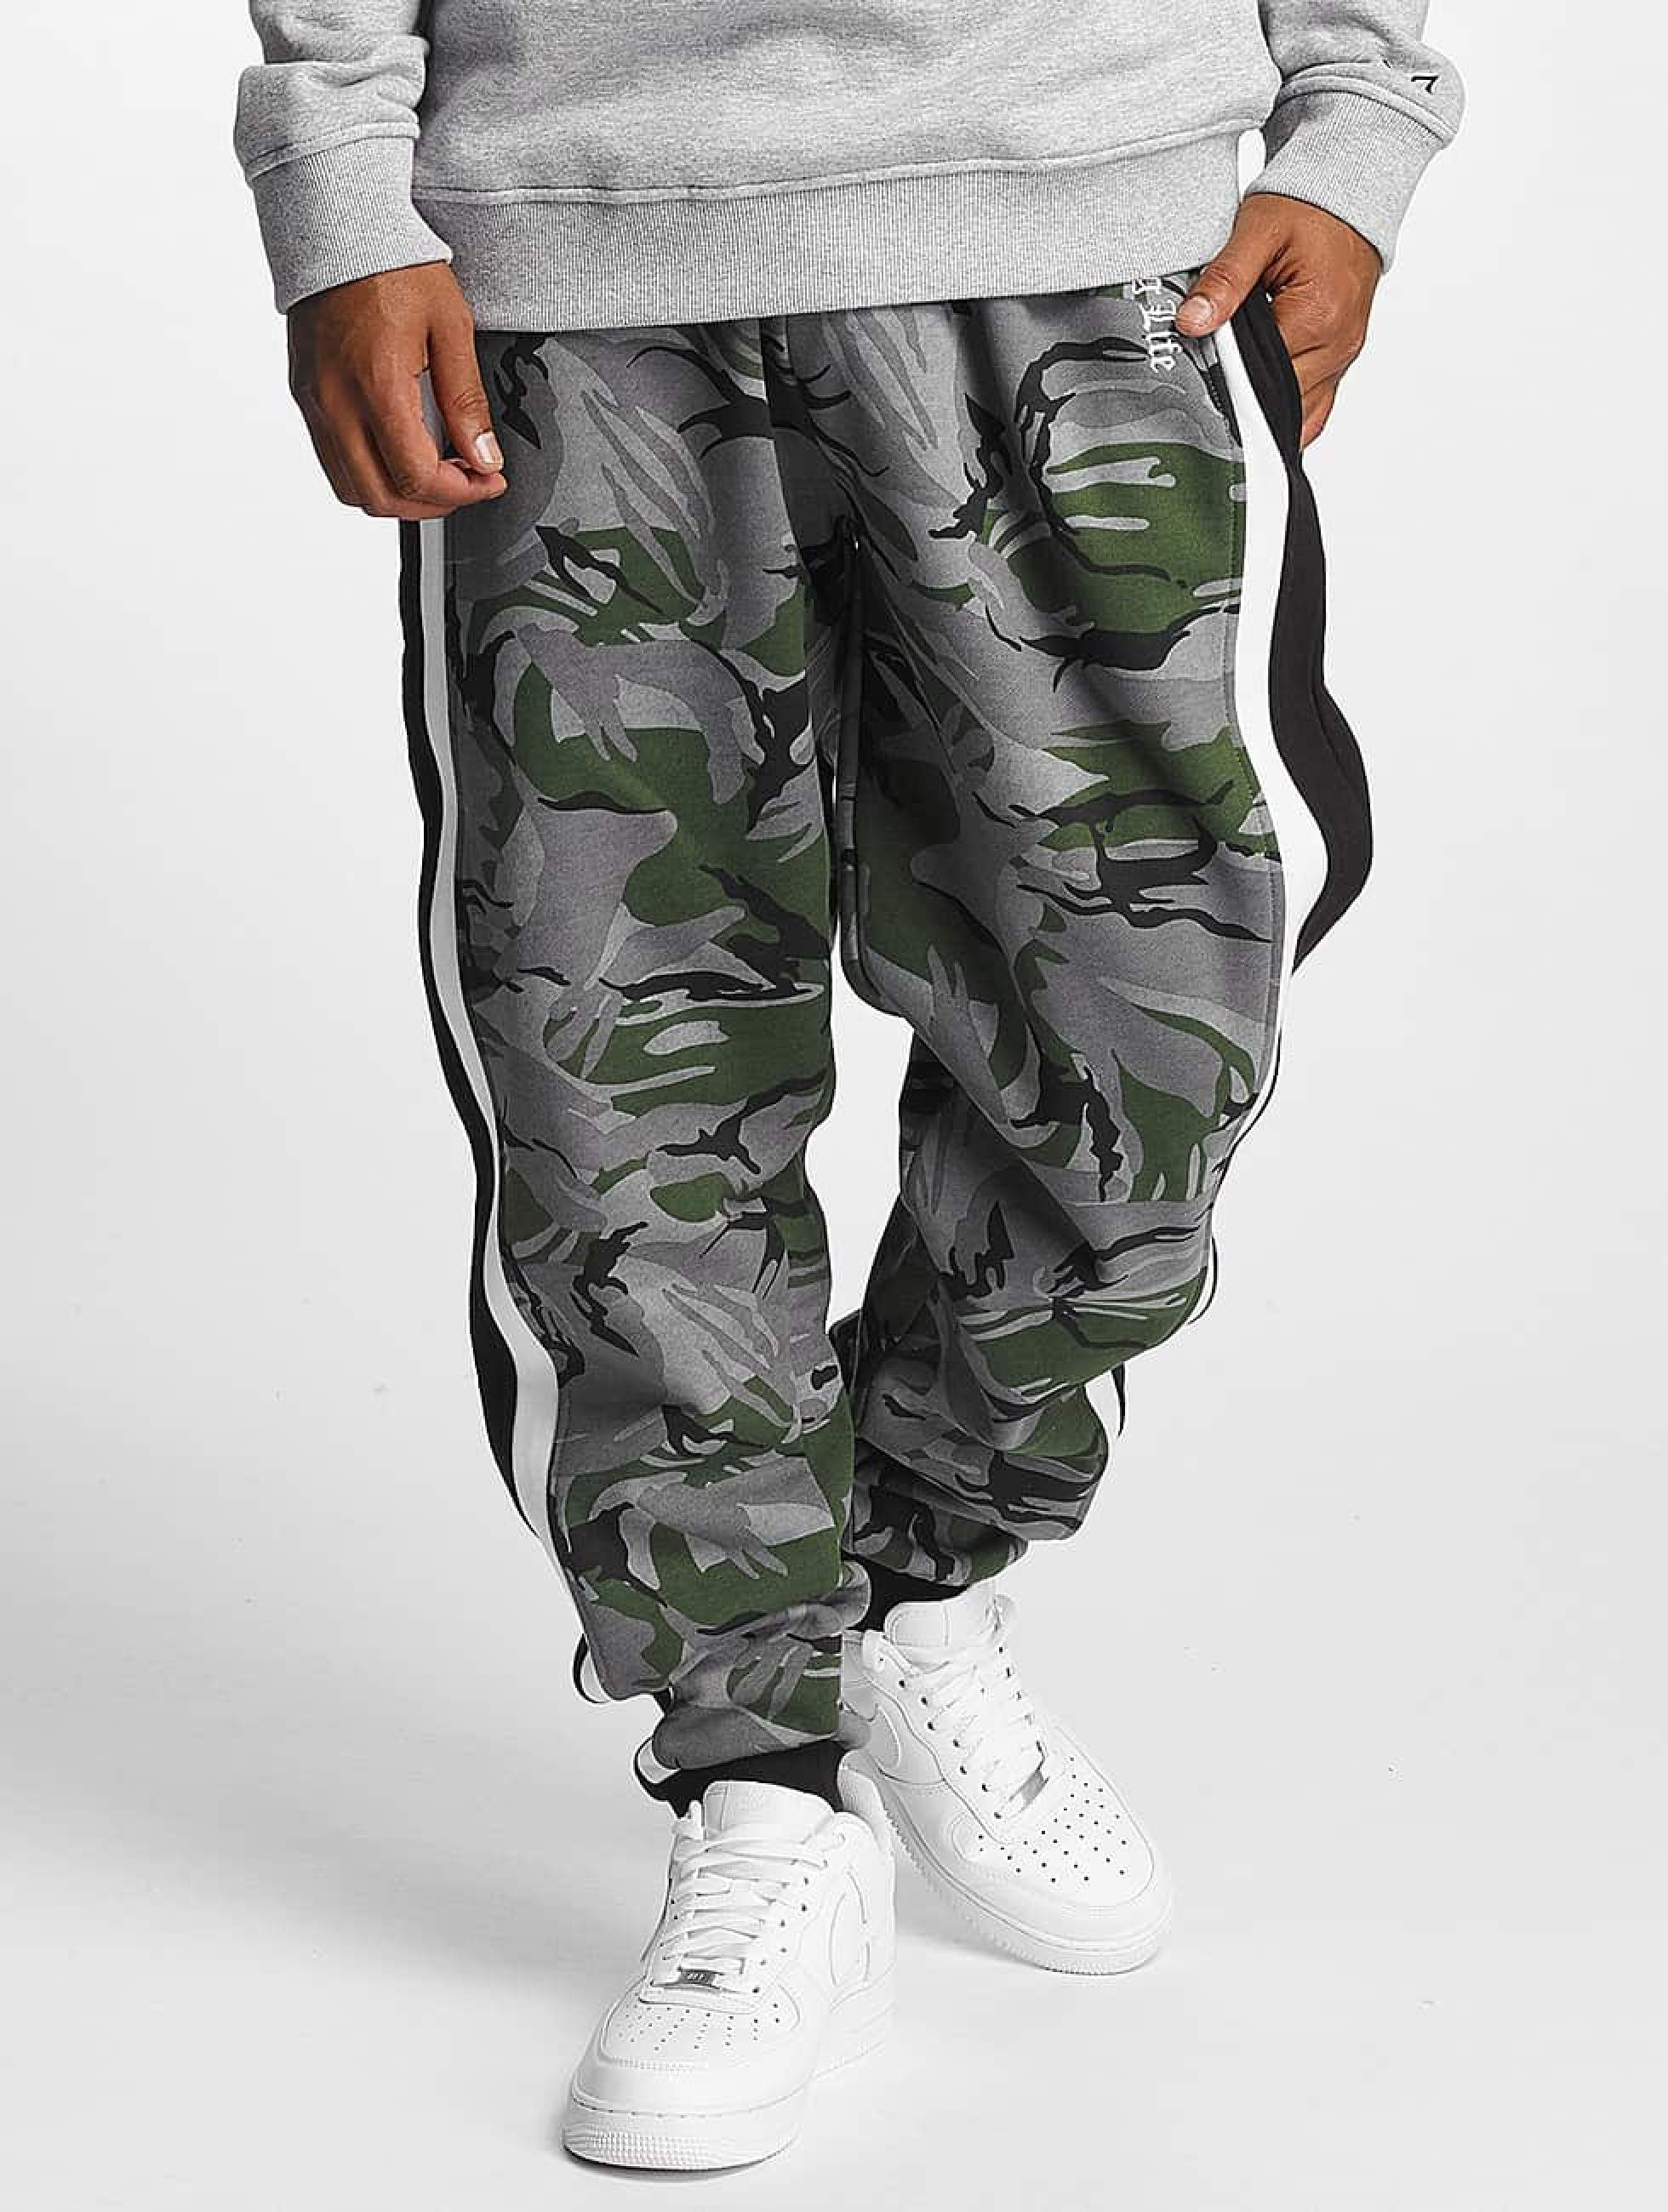 Thug Life / Sweat Pant Lecter in camouflage M